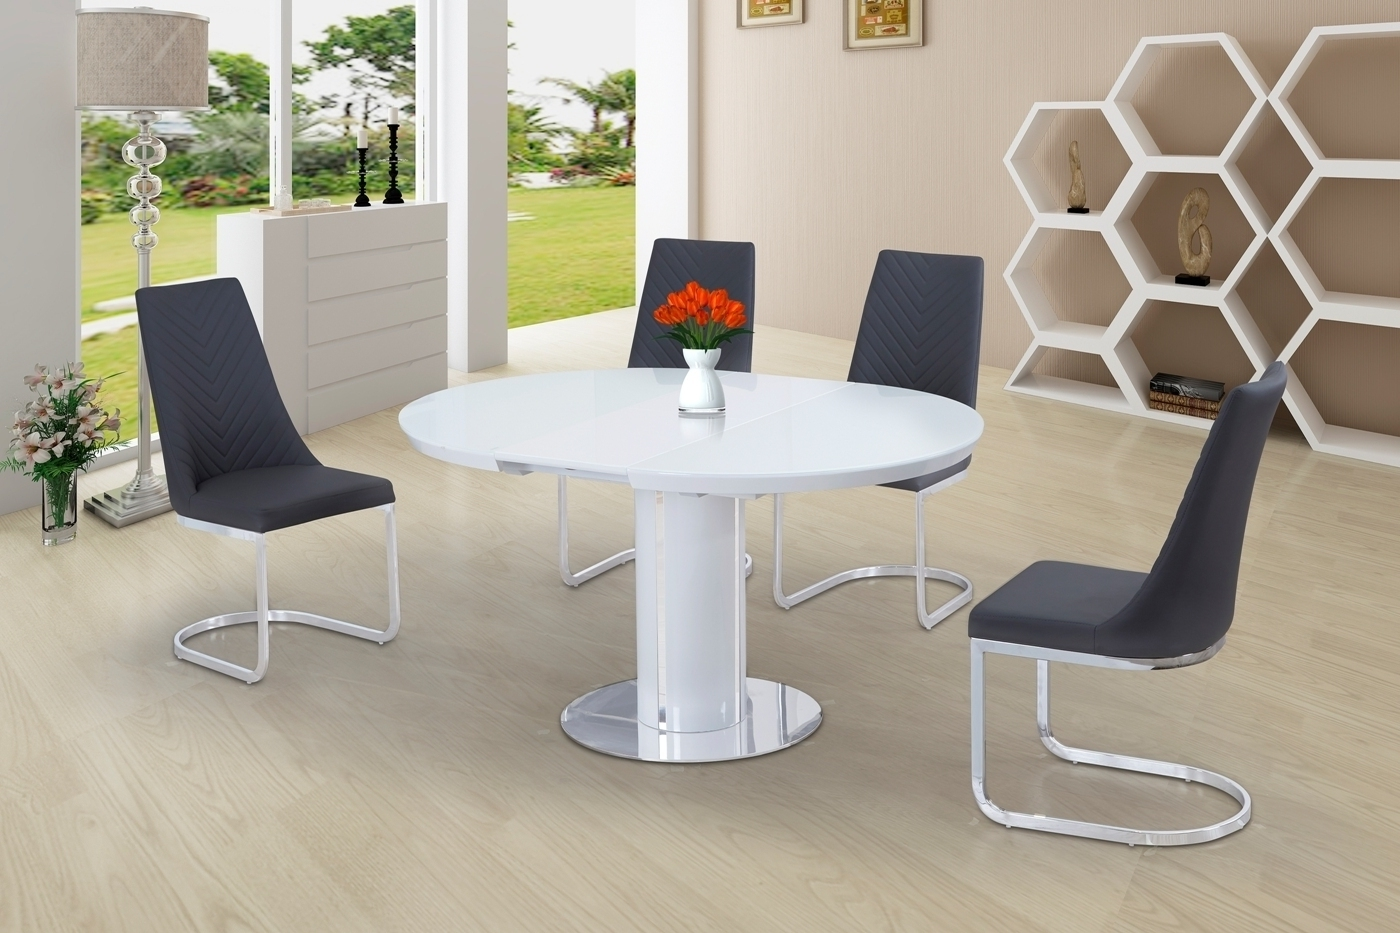 Oval White High Gloss Dining Tables Regarding Best And Newest Round White Glass High Gloss Dining Table And 6 Grey Chairs (View 17 of 25)